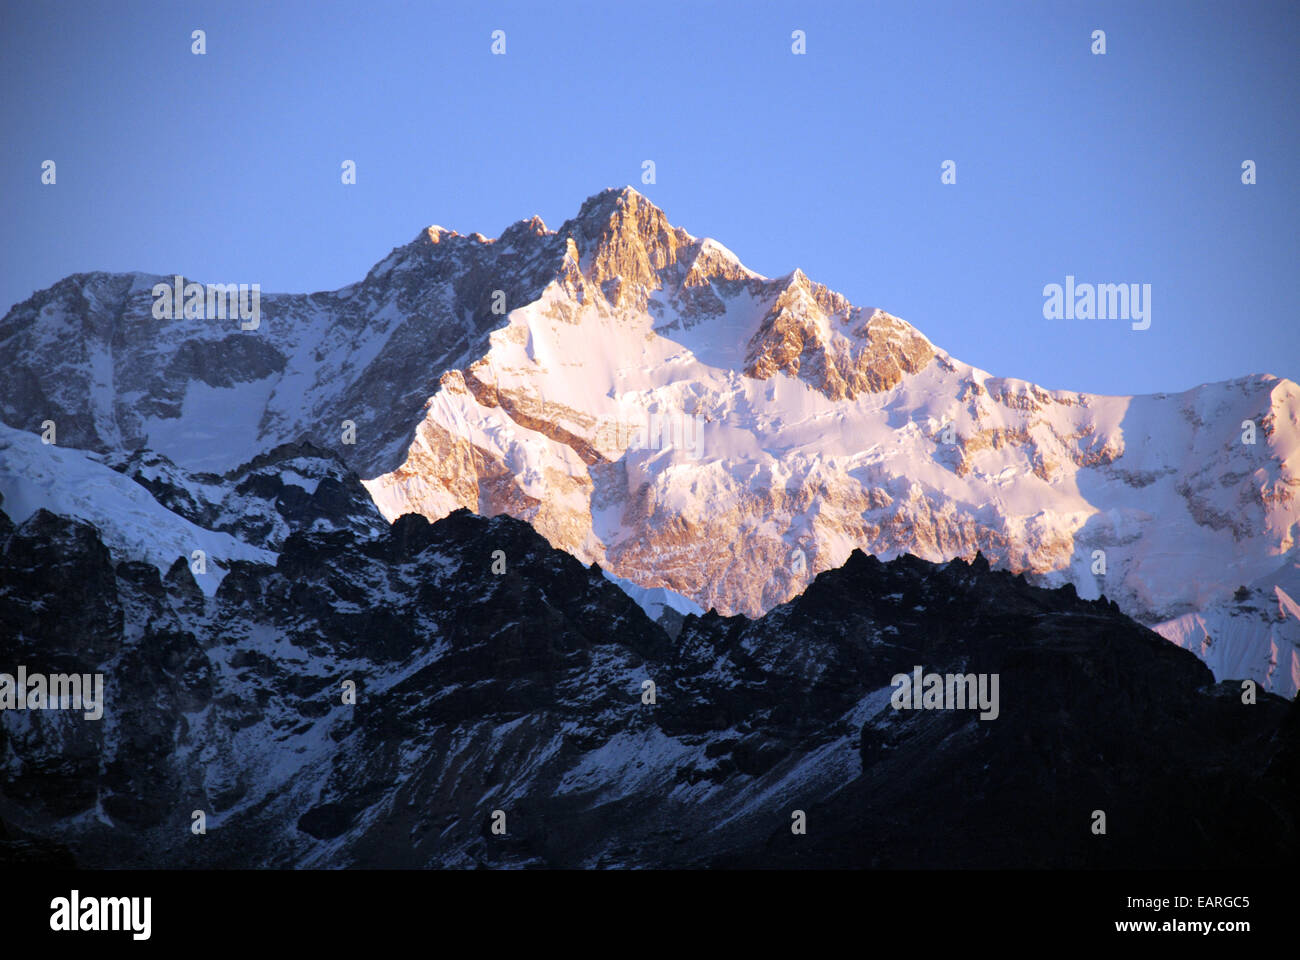 The sun rises on a Himalayan peak close to Kangchenjunga in the Indian state of Sikkim - Stock Image